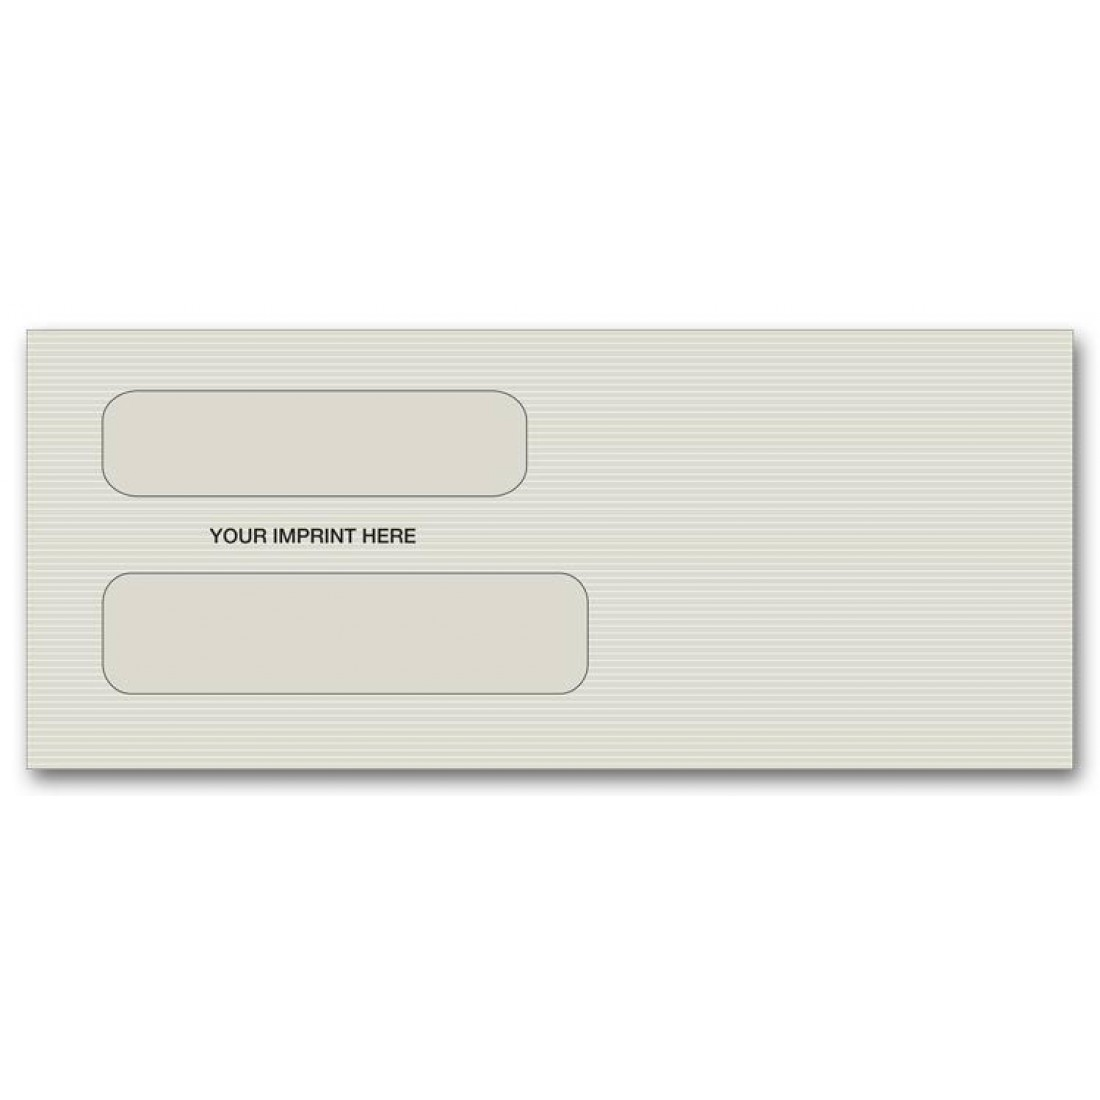 Gray self seal window envelopes free shipping for Window envelopes